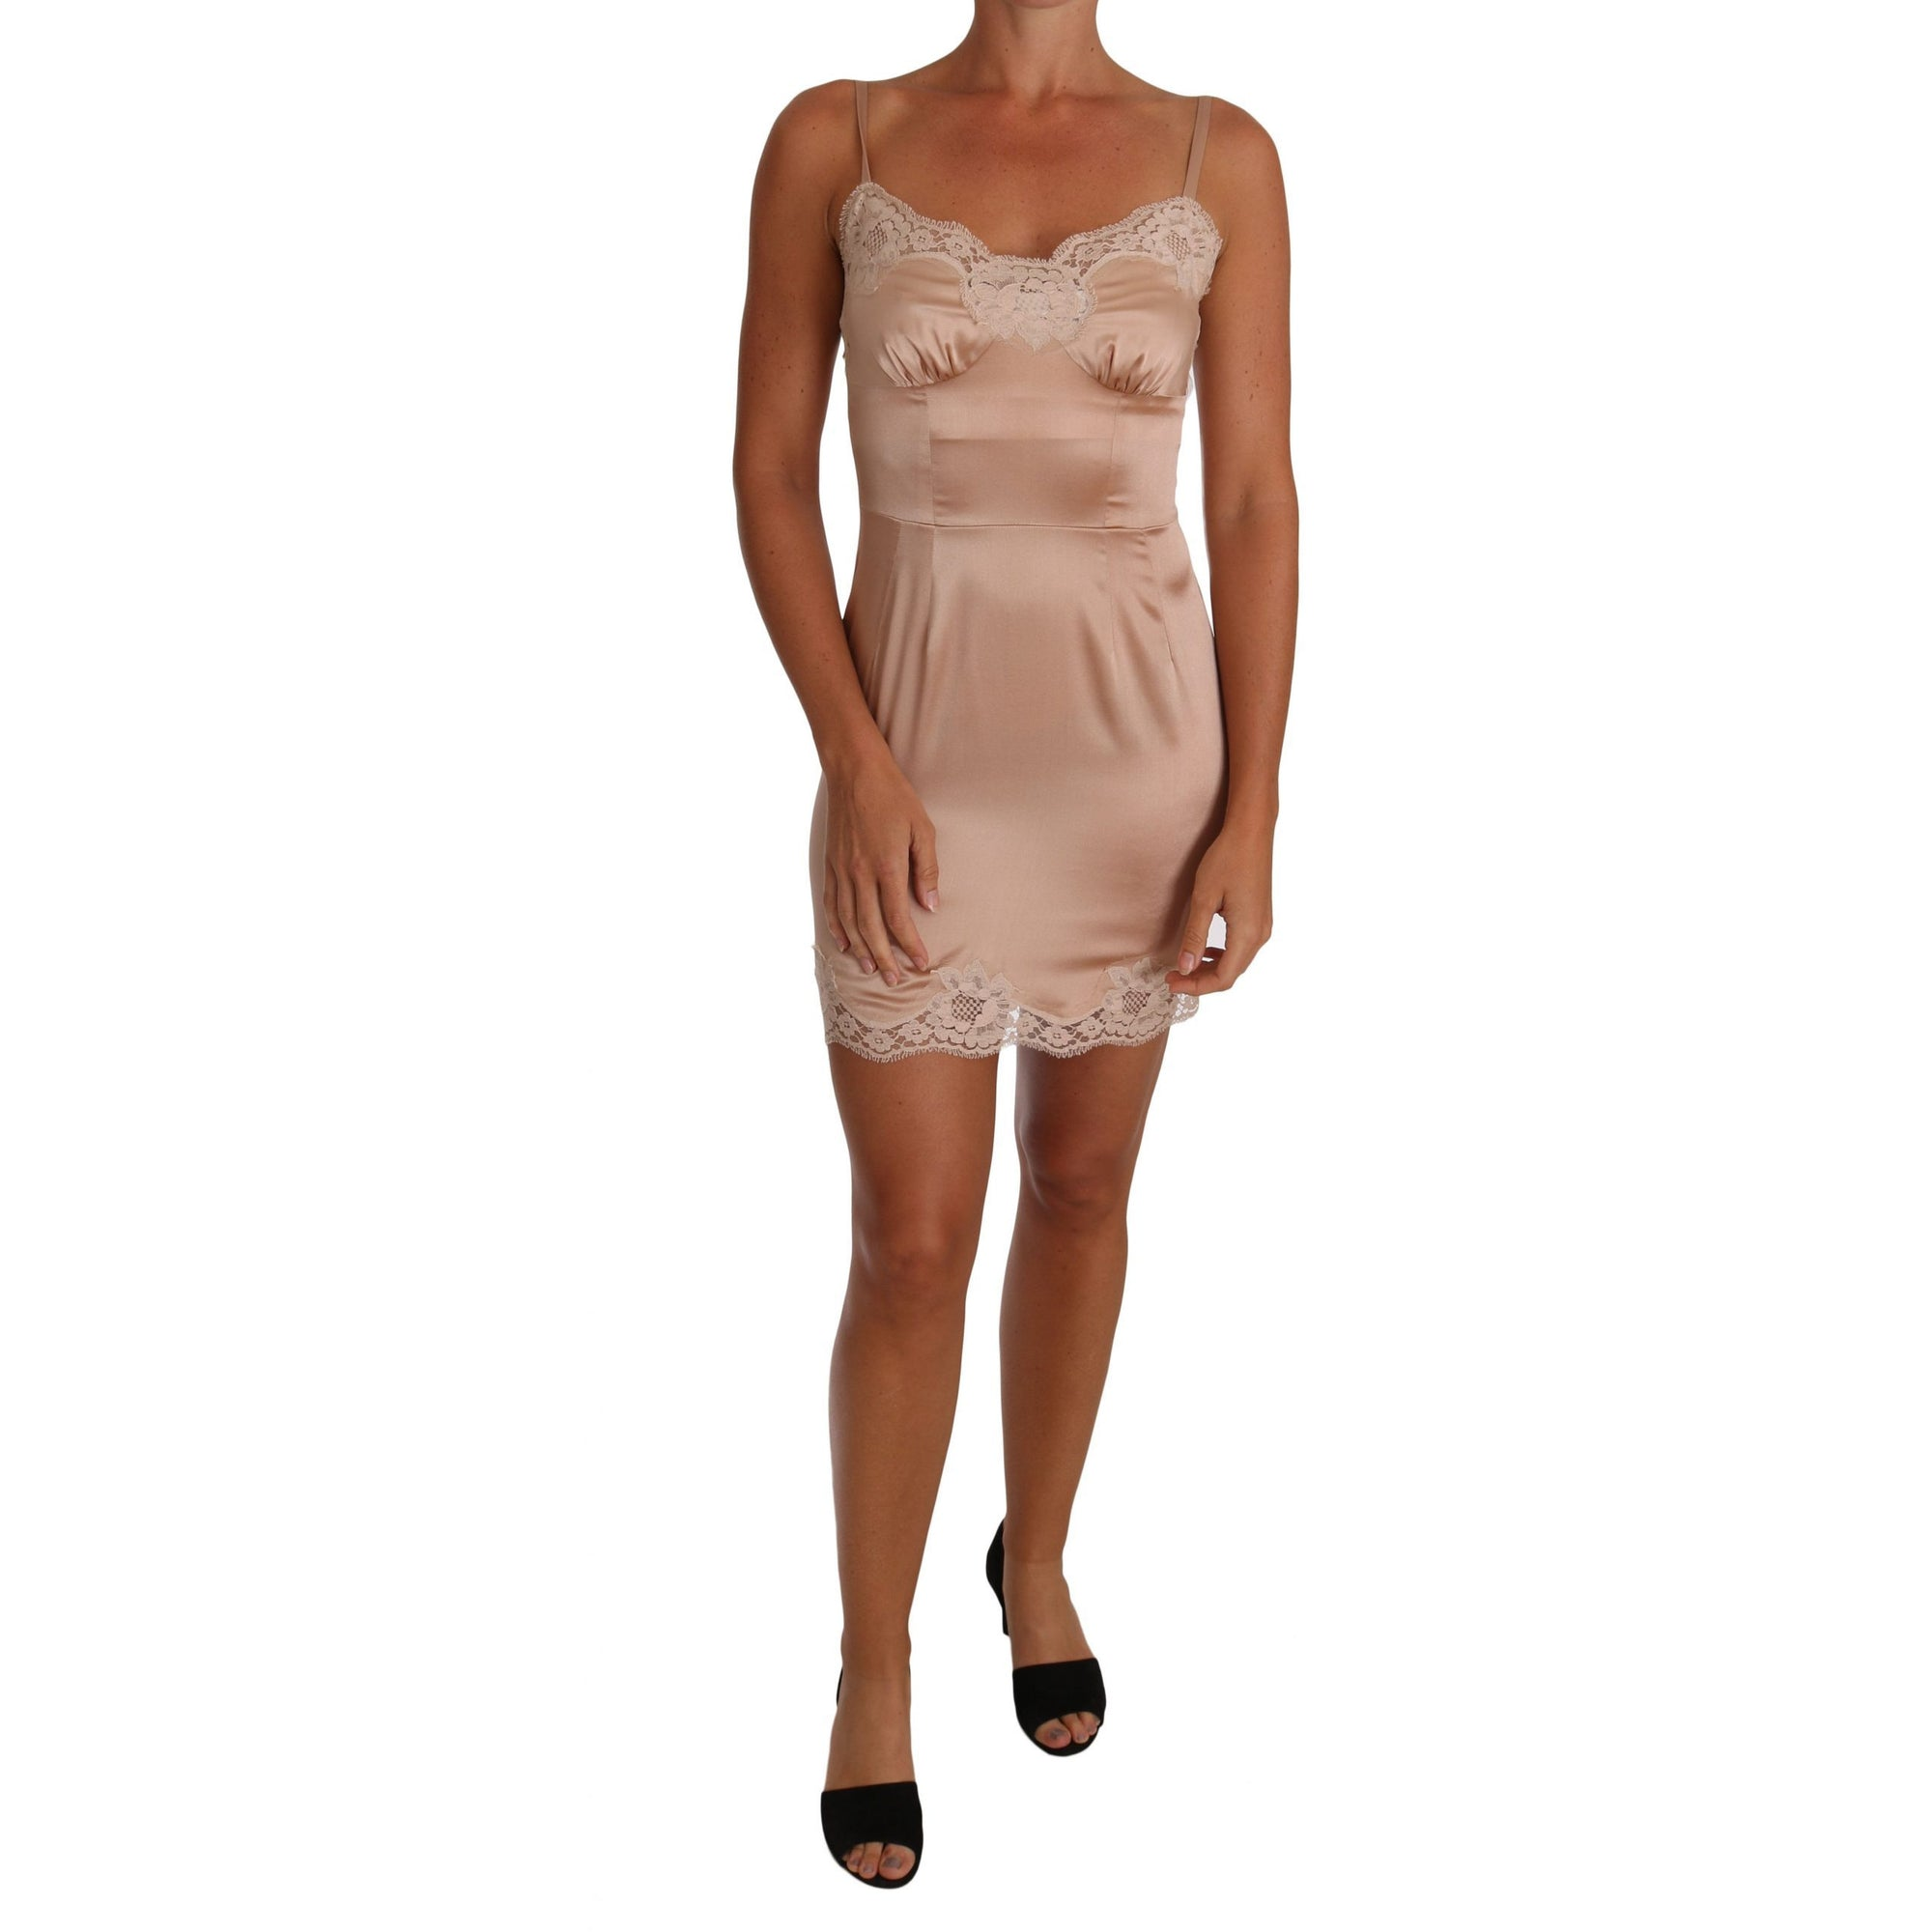 Beige Silk Lace Lingerie Chemise Dress